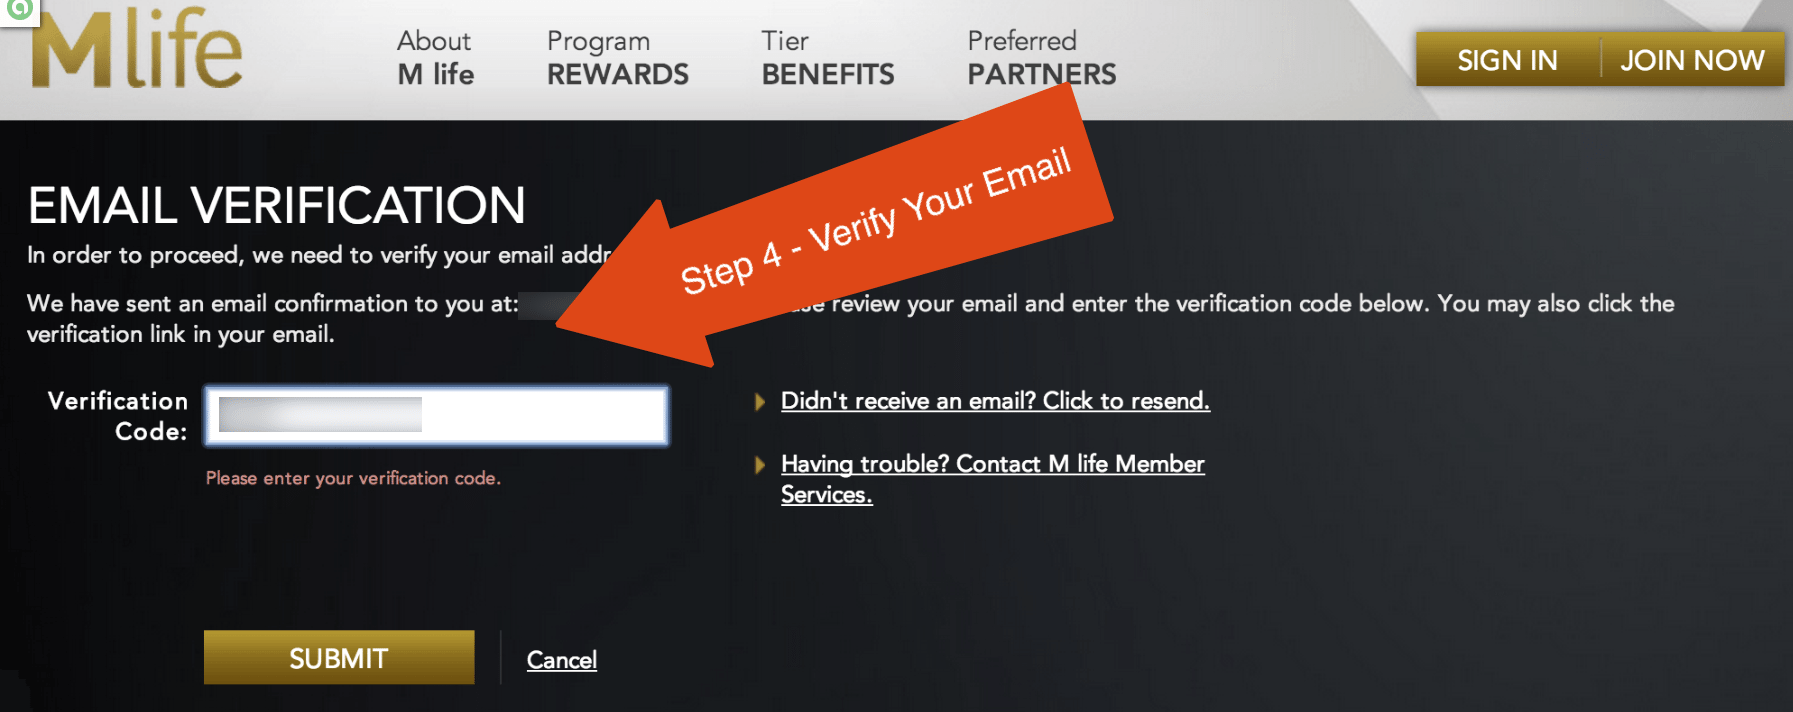 Step 4 - Verify Your Email